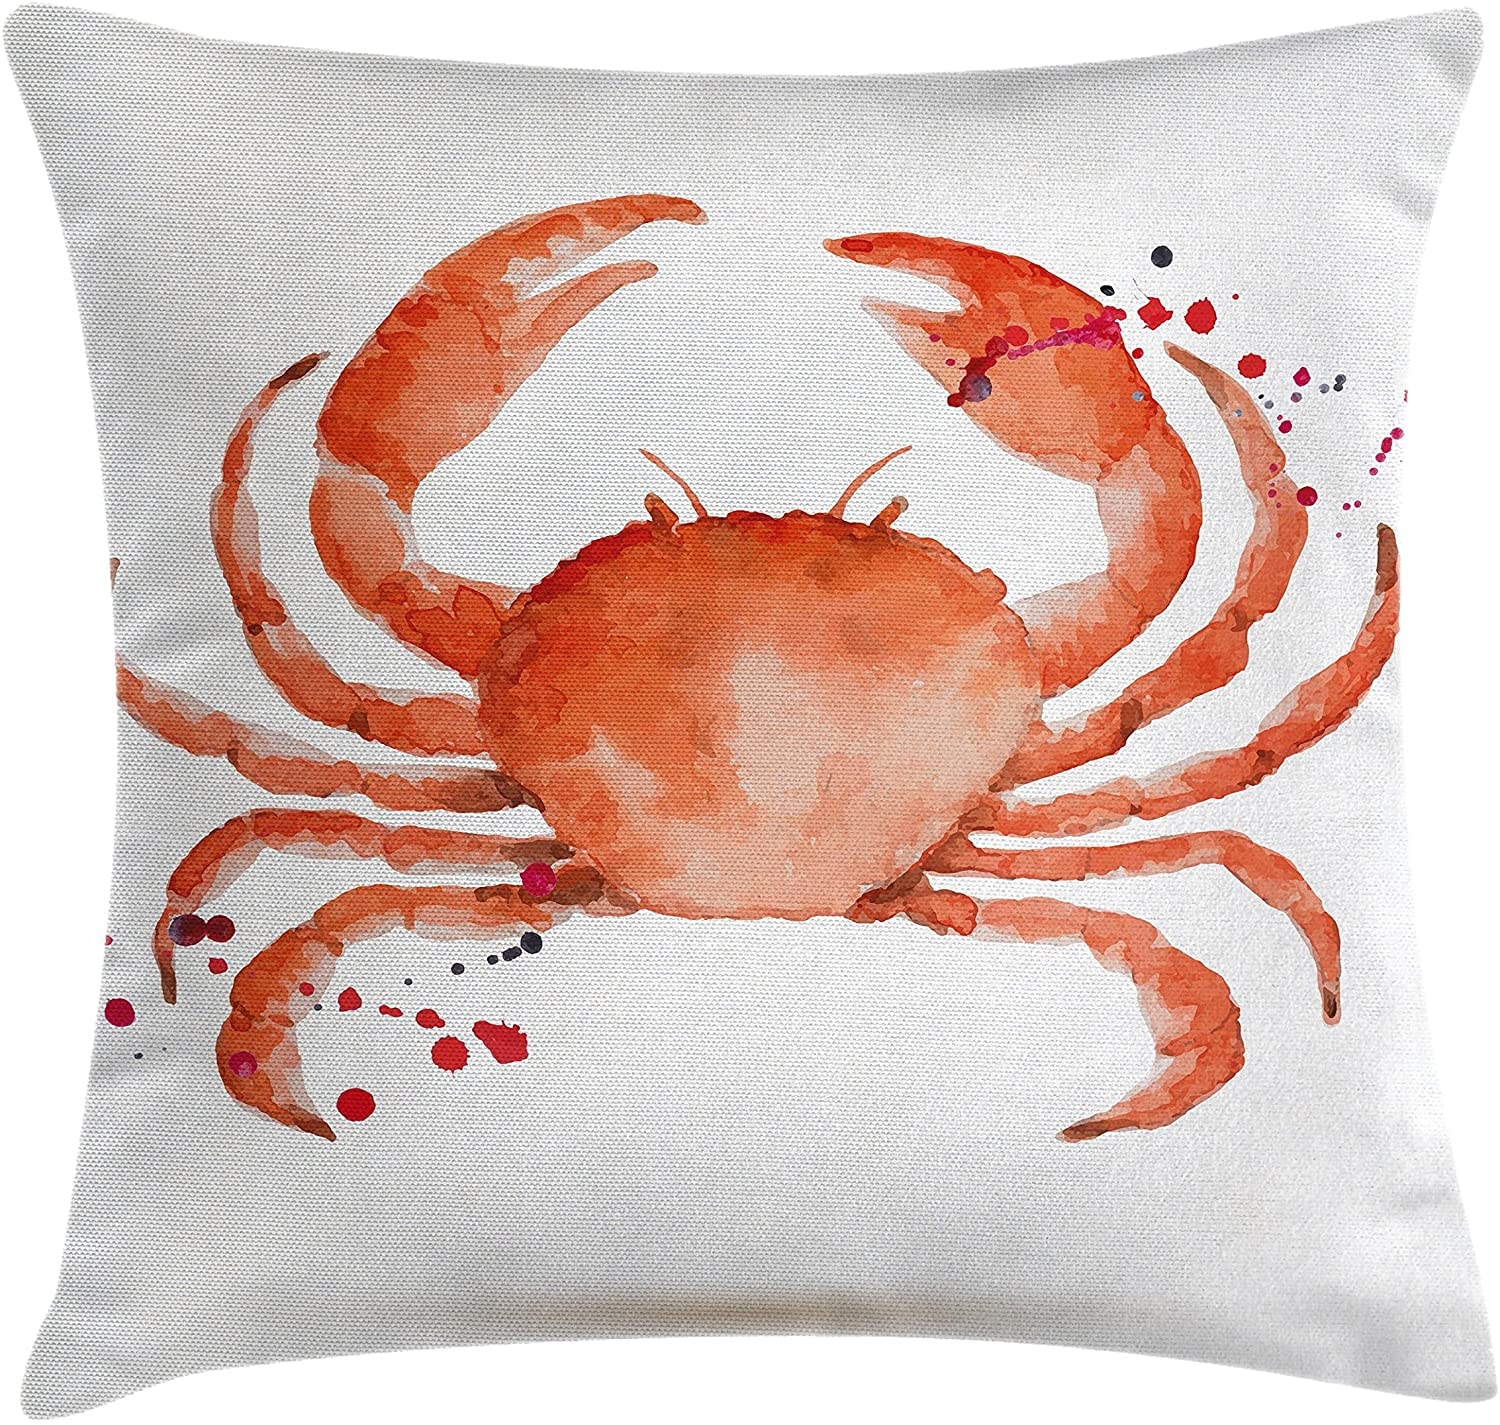 Ambesonne Crabs Throw Pillow Cushion Cover, Sea Animals Theme in Watercolor Style Effect a Big Crab on White Background Print, Decorative Square Accent Pillow Case, 24